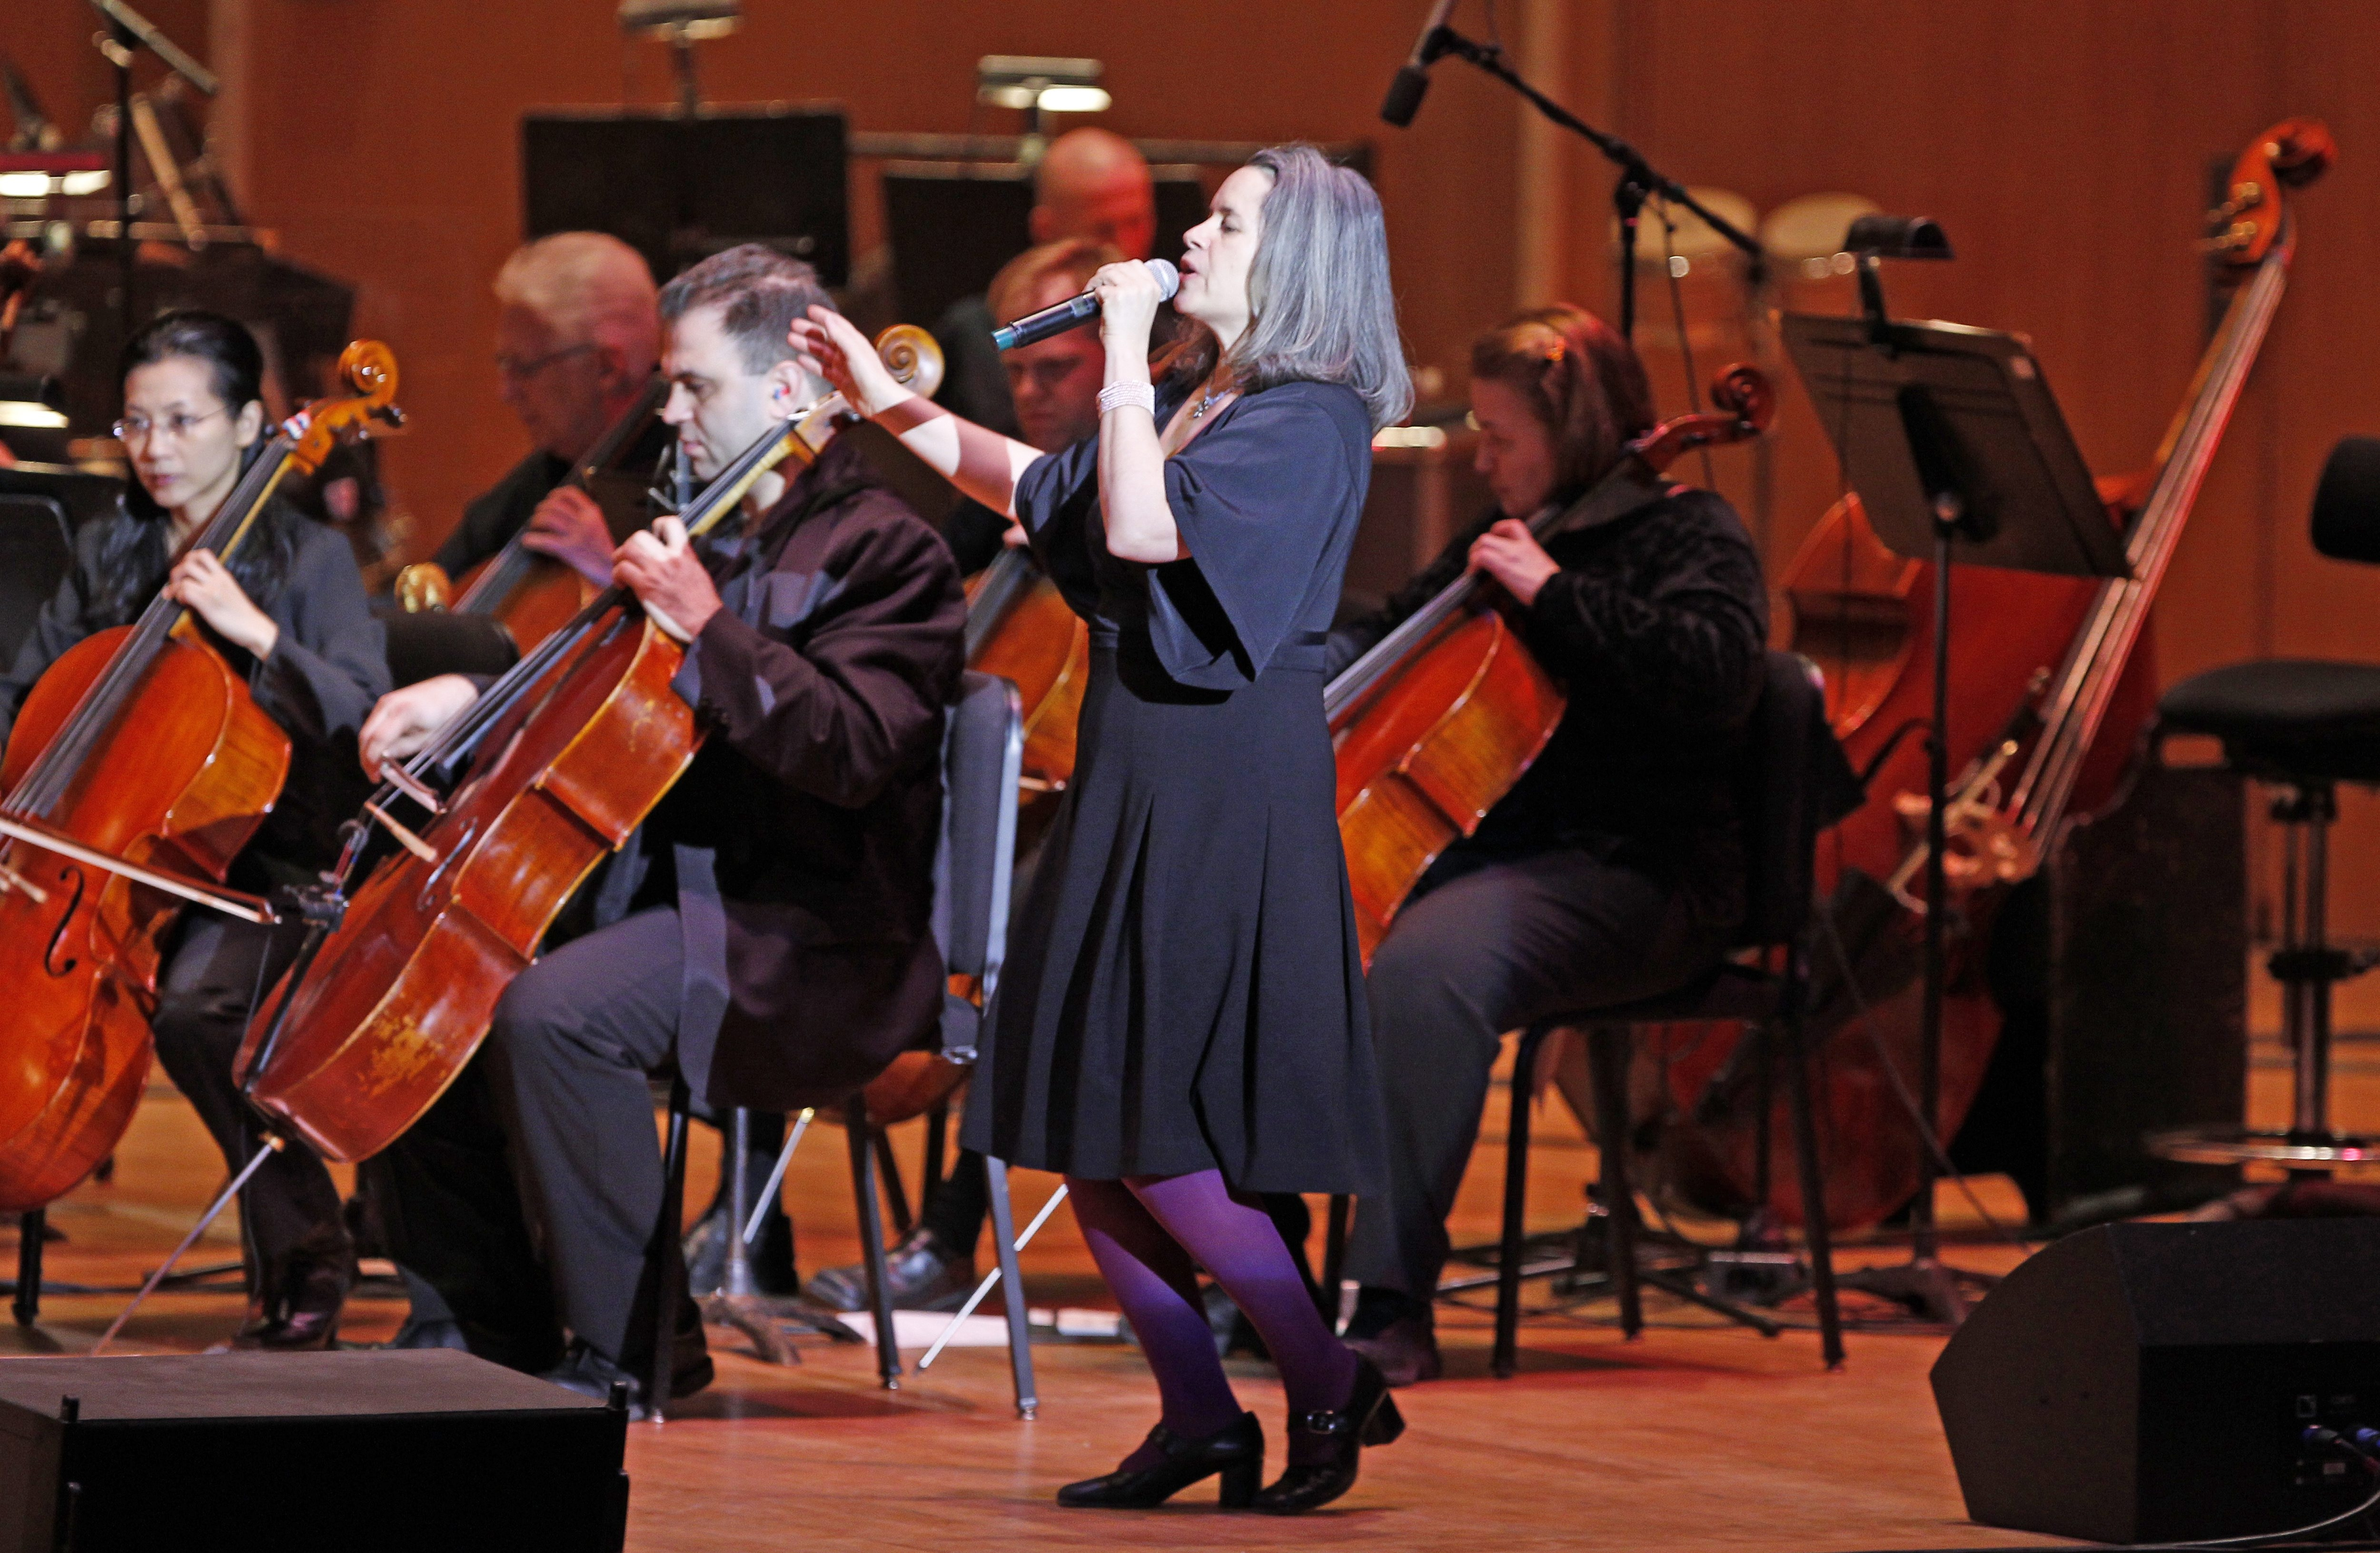 Former 10,000 Maniacs vocalist Natalie Merchant, shown performing with the Buffalo Philharmonic Orchestra in February, is among the 2013 inductees in the Buffalo Music Hall of Fame. (Harry Scull Jr. / Buffalo News file photo)